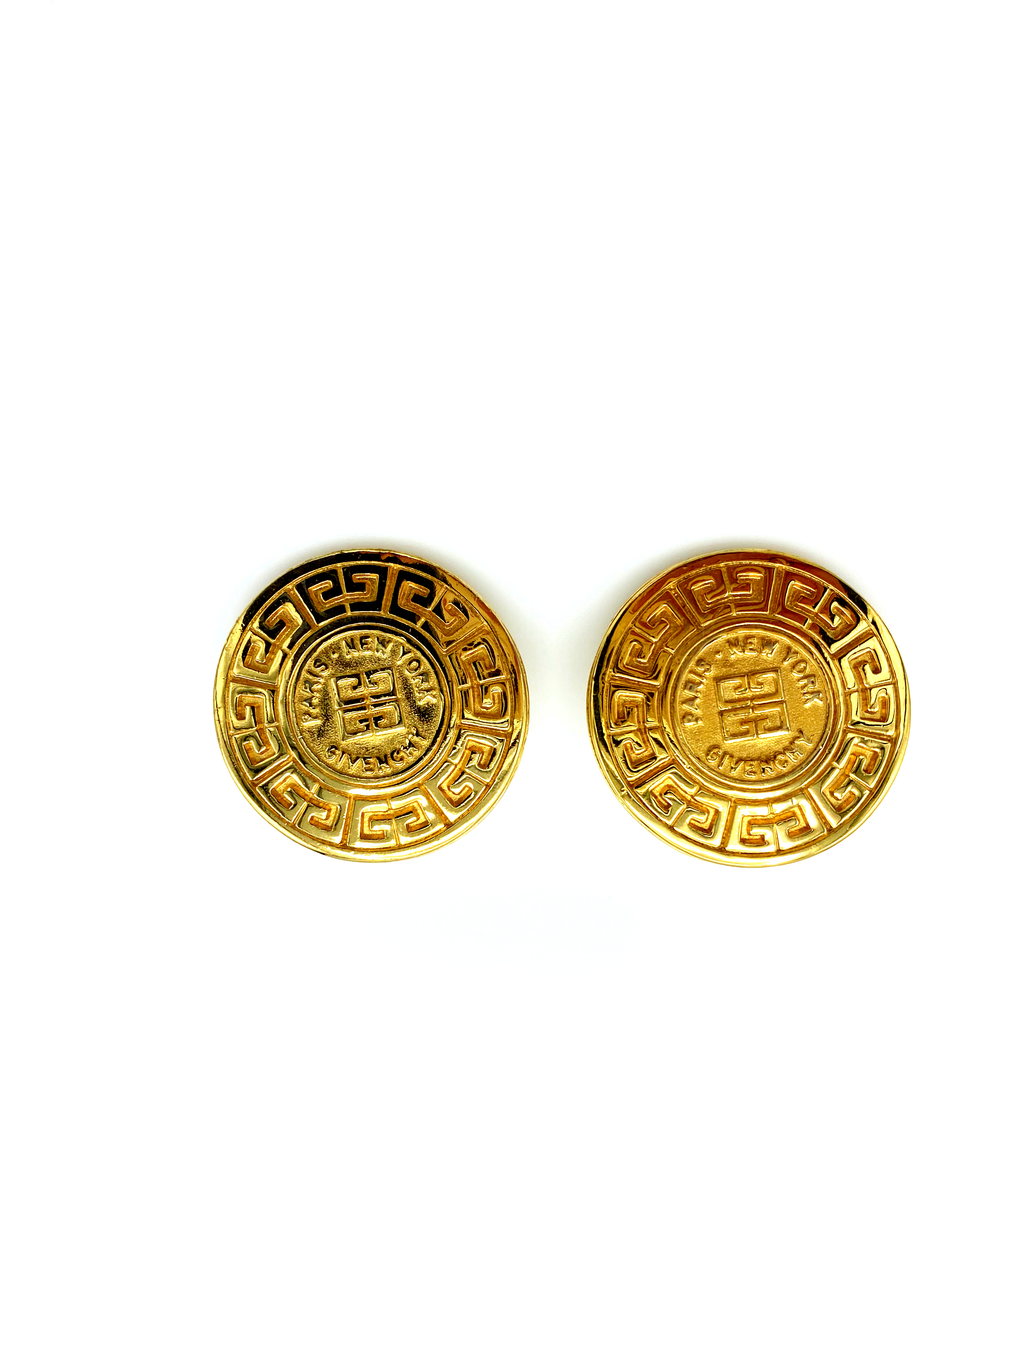 Givenchy Large Medallion Logo Vintage Earrings-Sustainable Fashion with Vintage Style-Trending Designer Fashion-24 Wishes